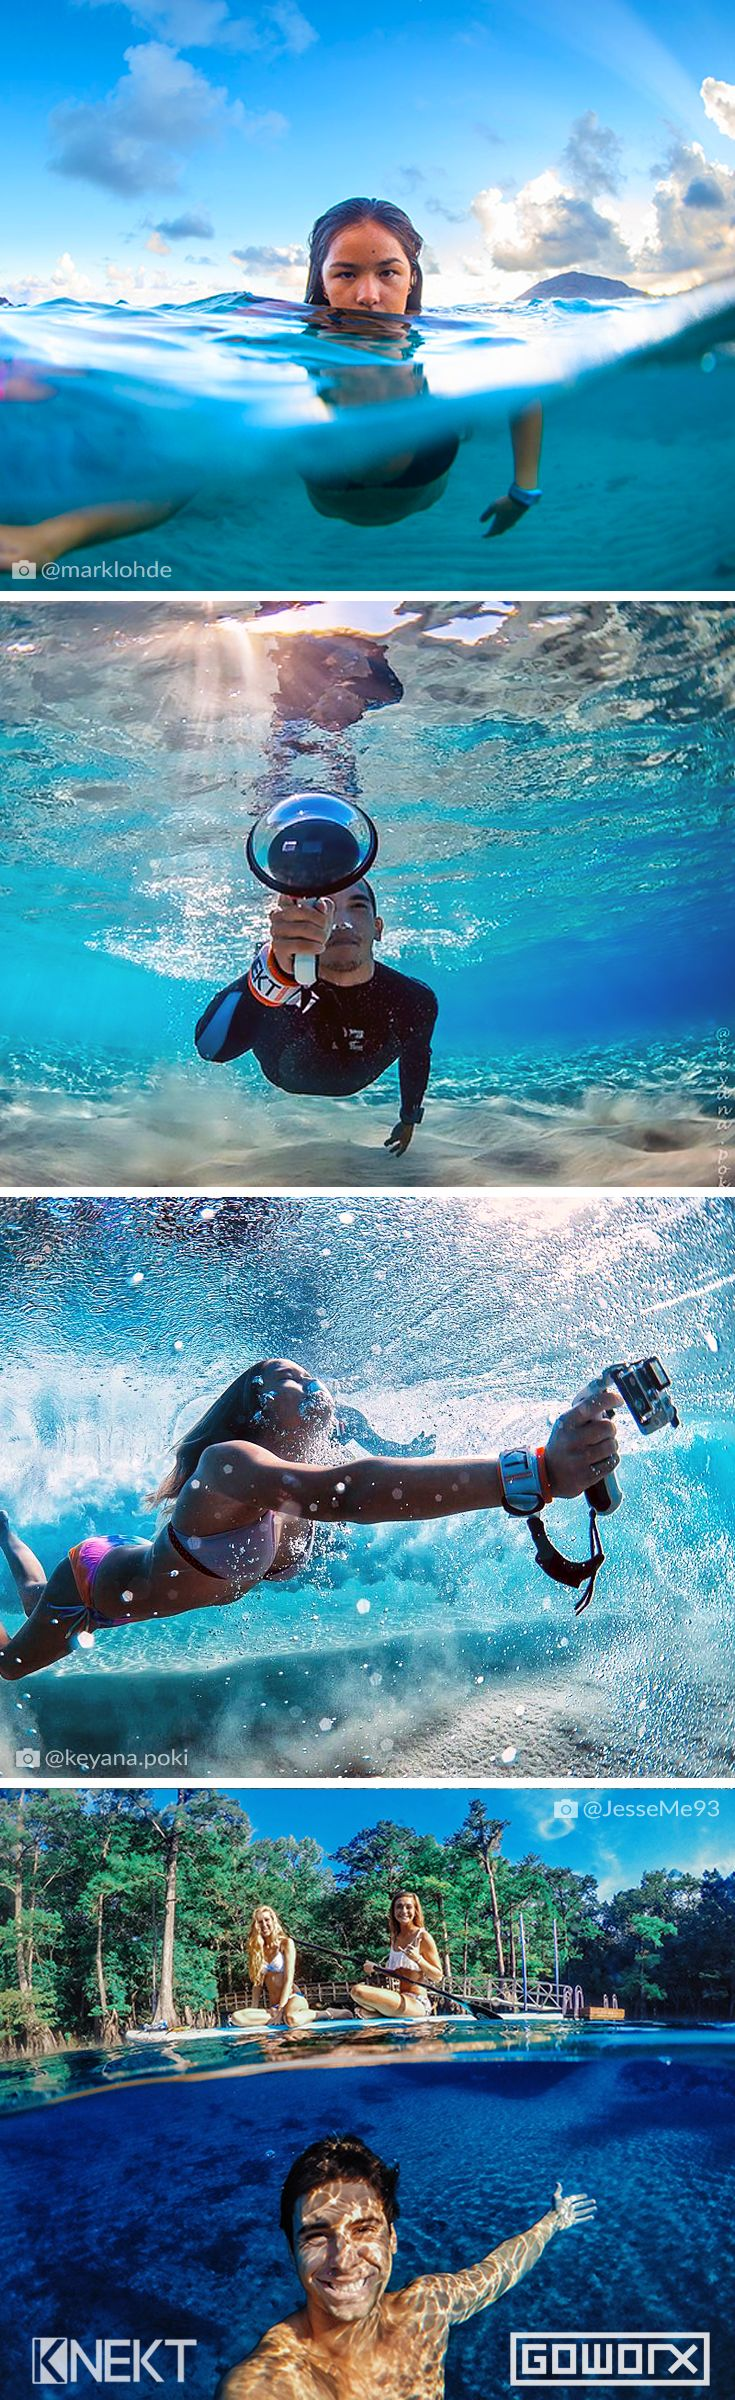 Capture epic over-under photos with the KNEKT GoPro Dome Port & GoPro Triggers - backed by our 100% Gear Guarantee. Repin if you get stoked by those underwater vibes like we do! Your source for GoPro, Drone & Mobile Gear // www.GoWorx.com